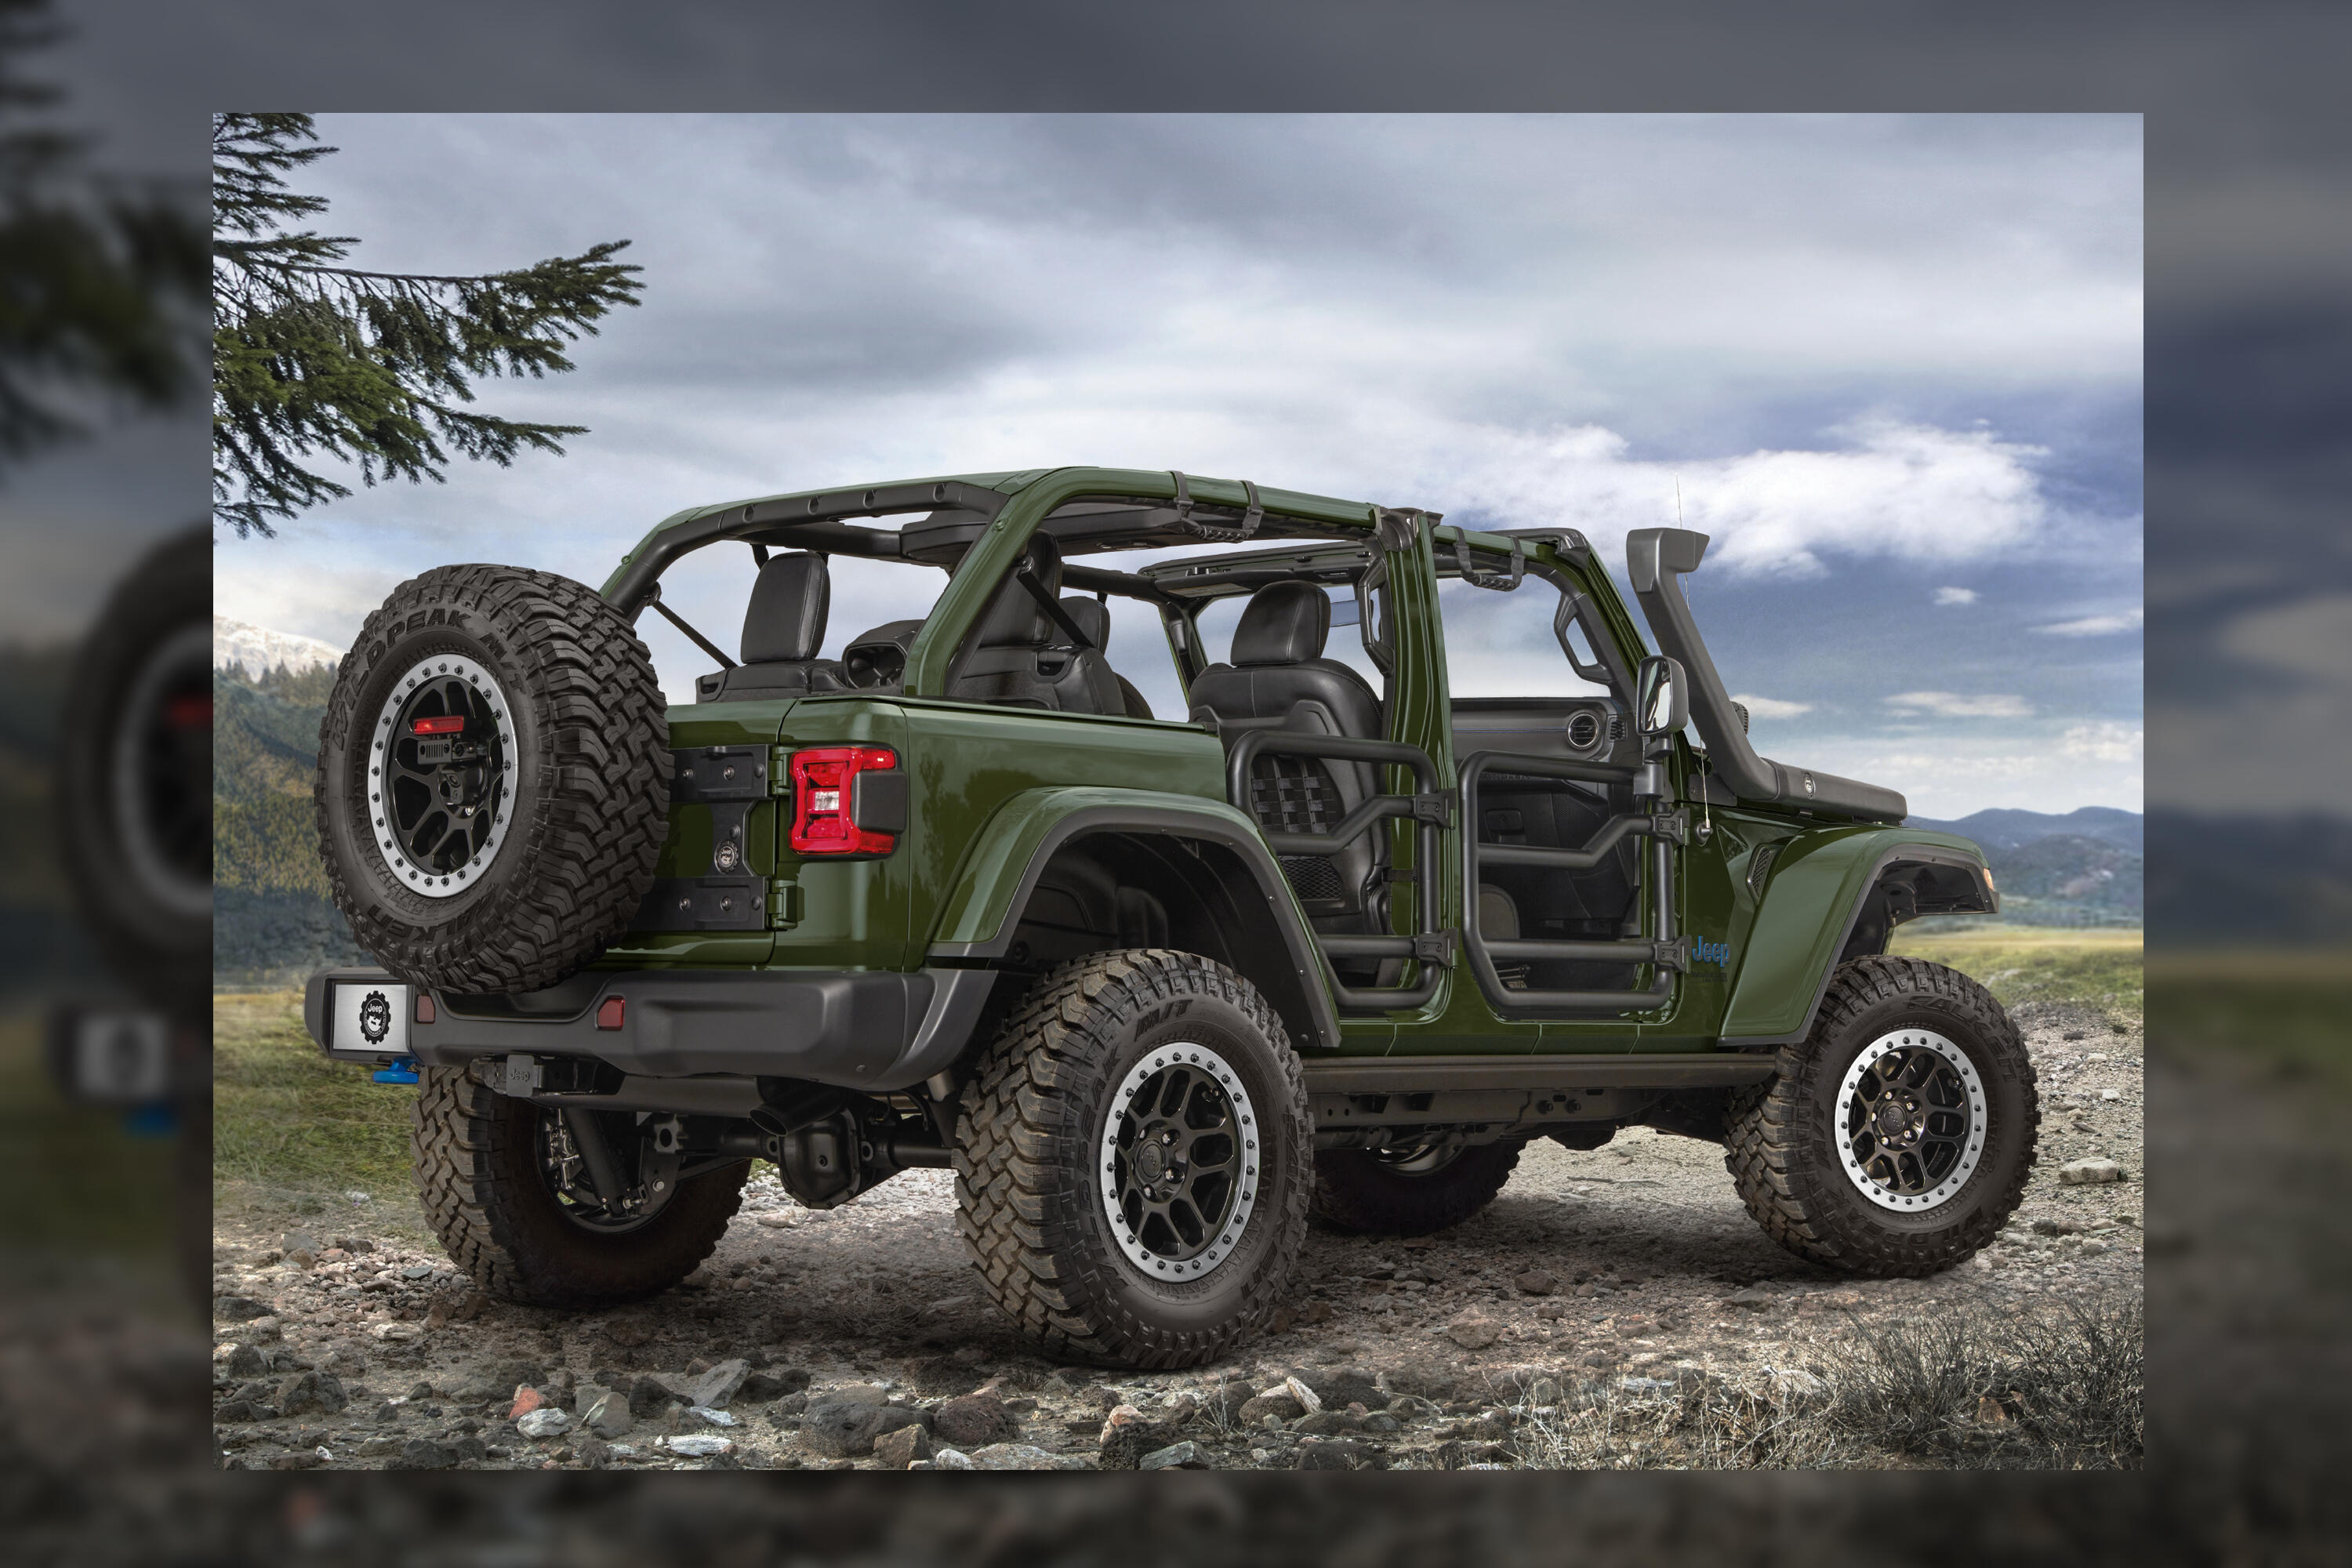 2021 Jeep Wrangler 4xe Accessories - trail rated